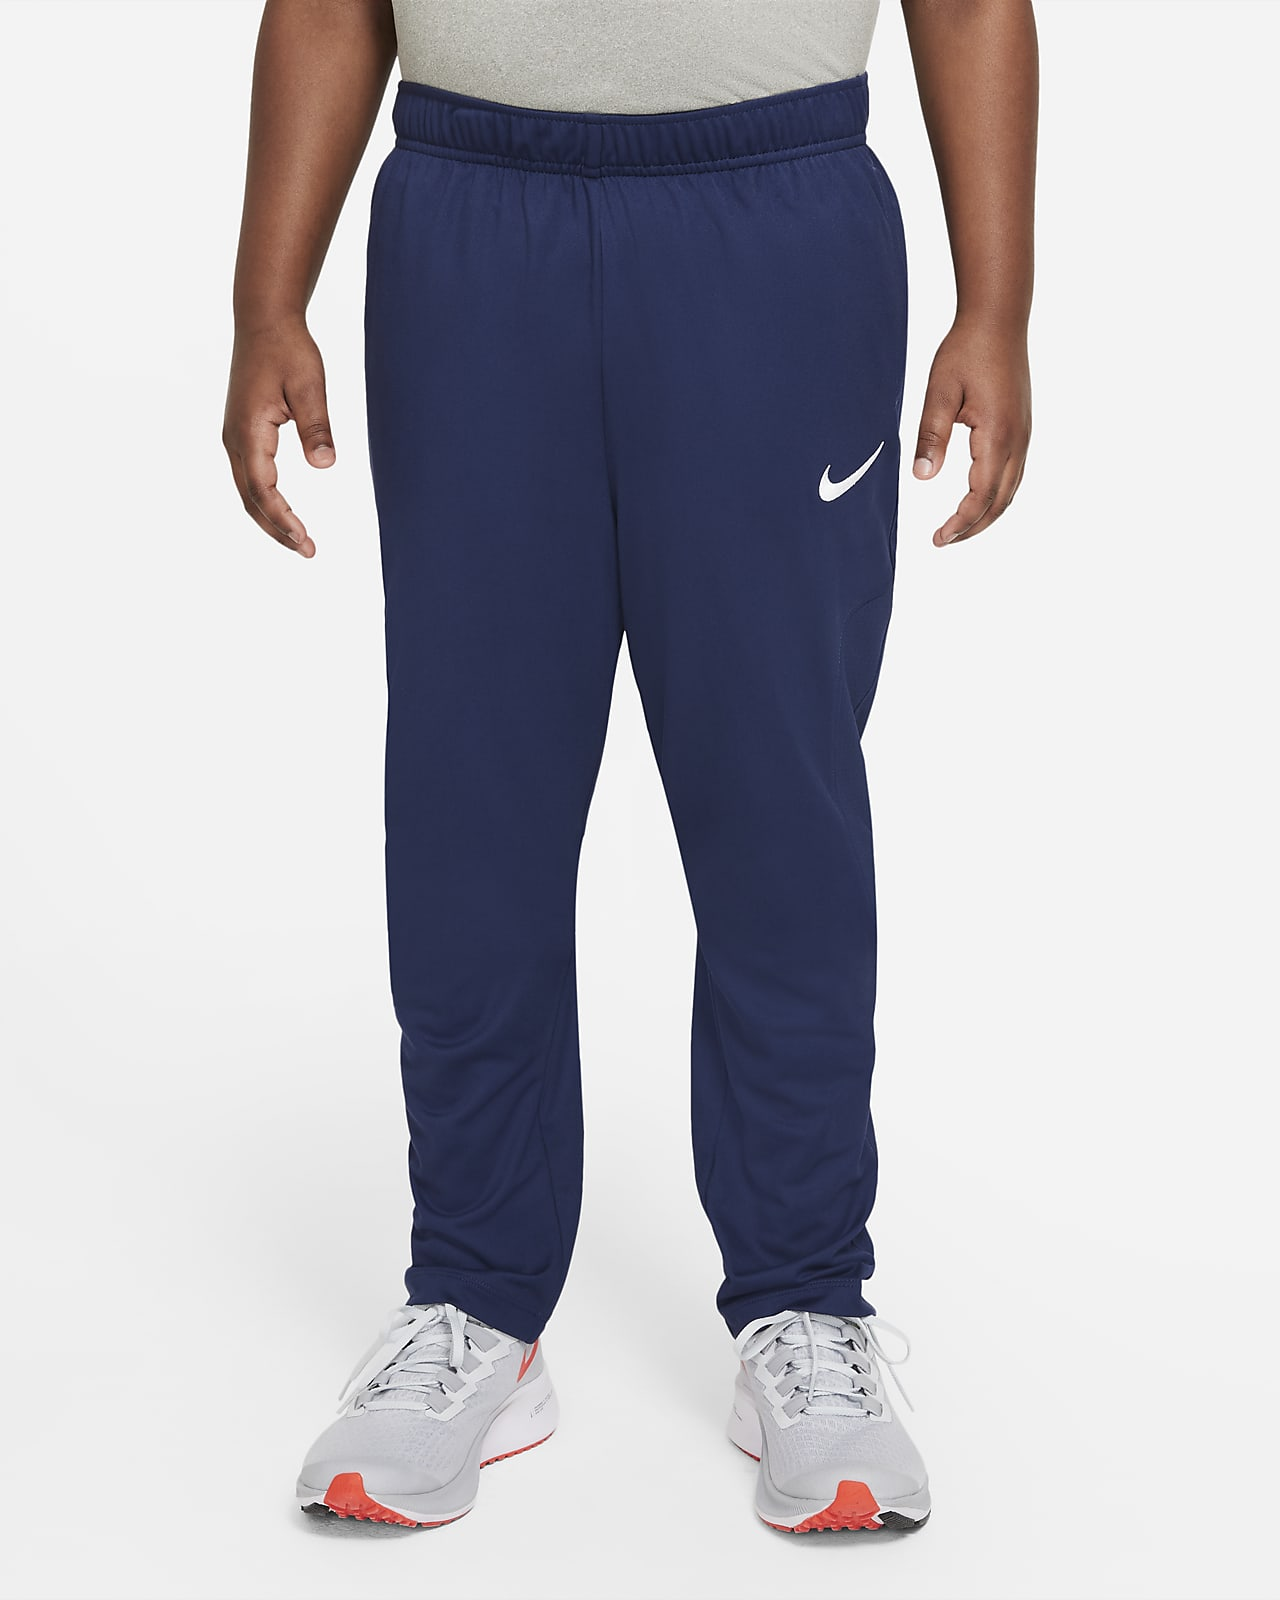 Nike Sport Big Kids' (Boys') Training Pants (Extended Size)